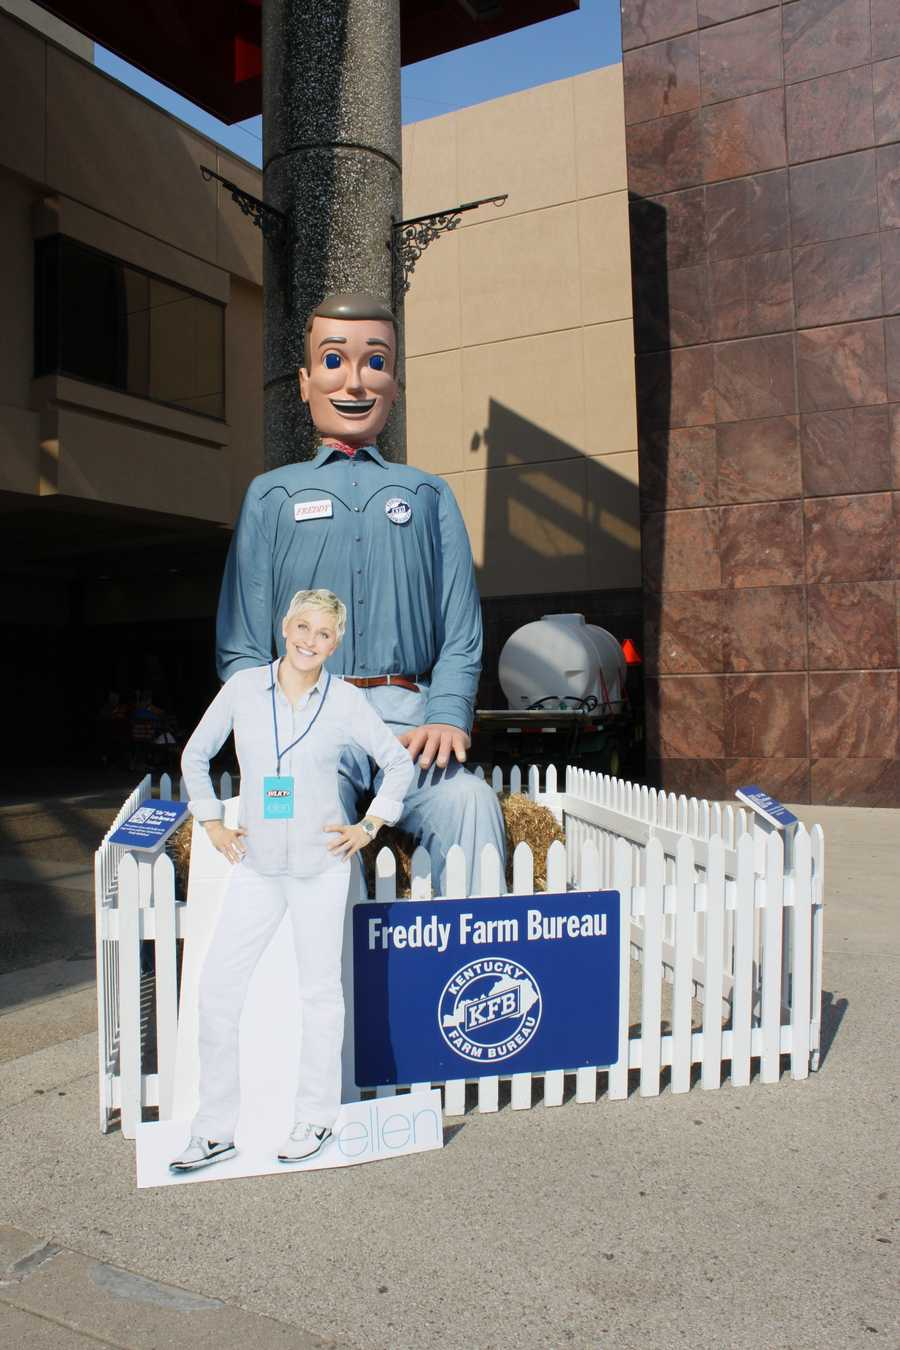 Freddy Farm Bureau either couldn't -- or wouldn't -- dance with Ellen. We're counting on you to bring your dancing shoes next year, Freddy!